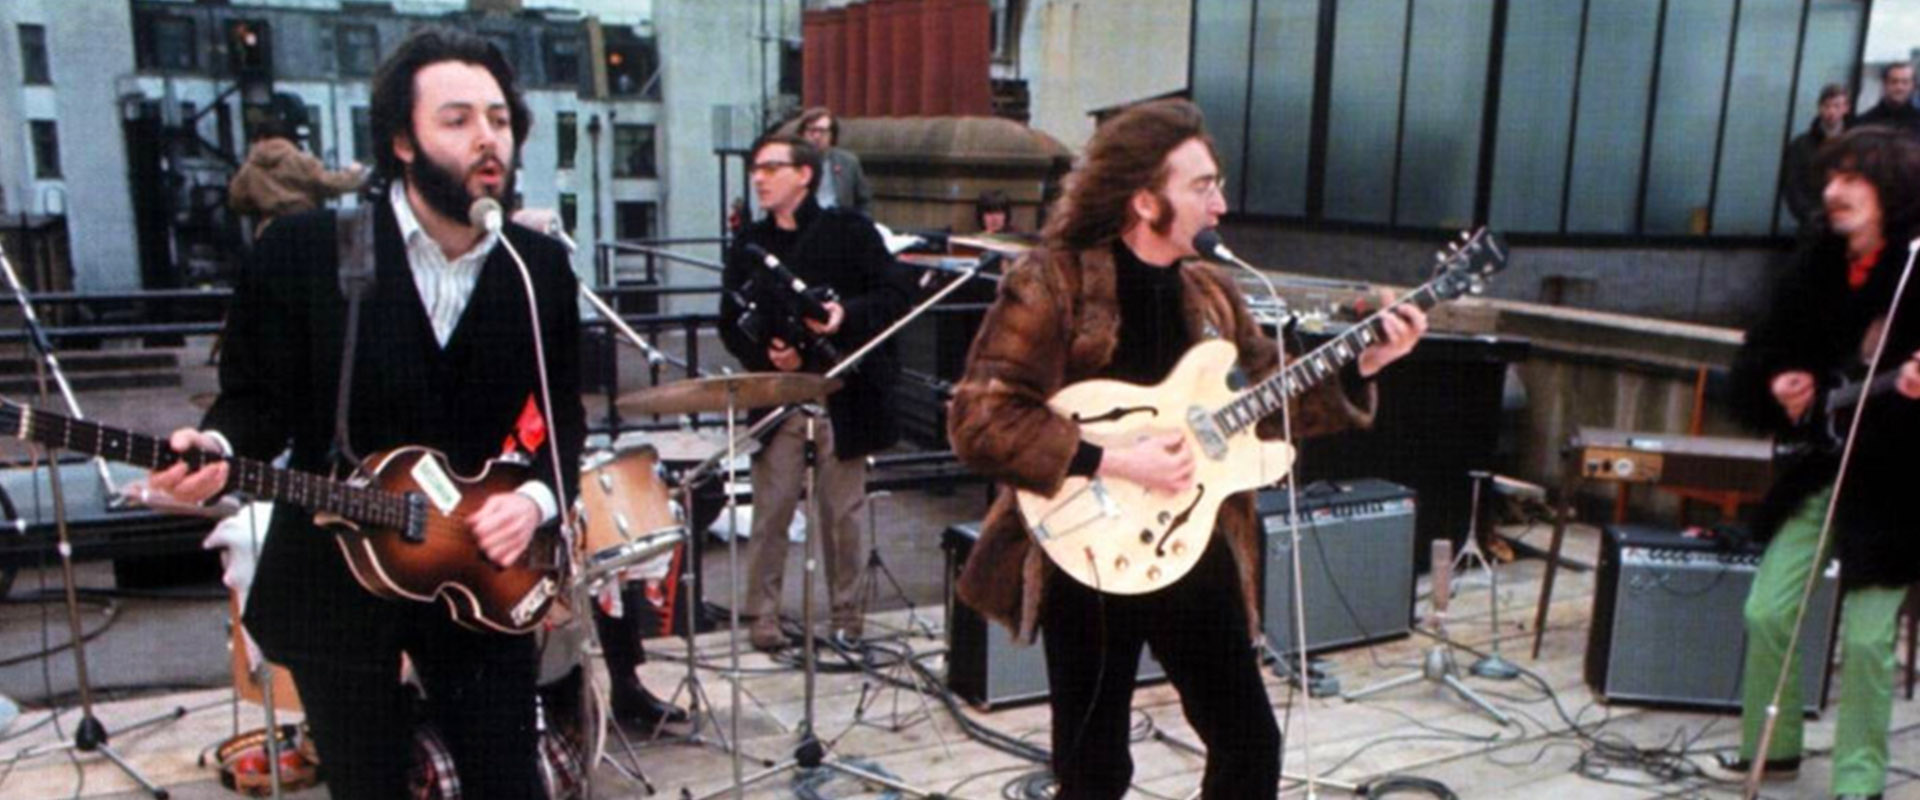 Beatles Rooftop Performance